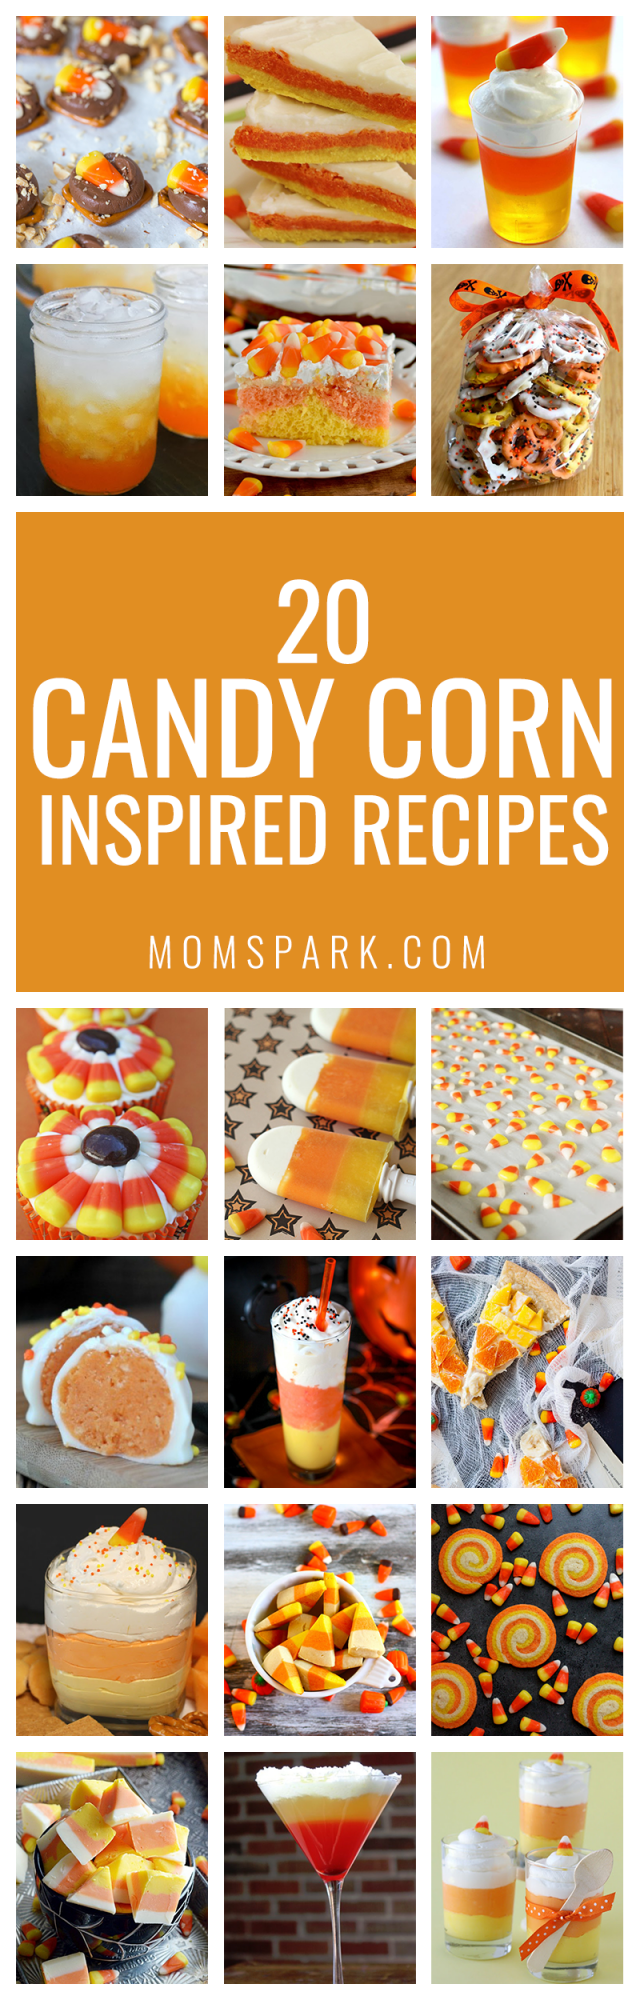 20 Candy Corn Inspired Recipes for Halloween